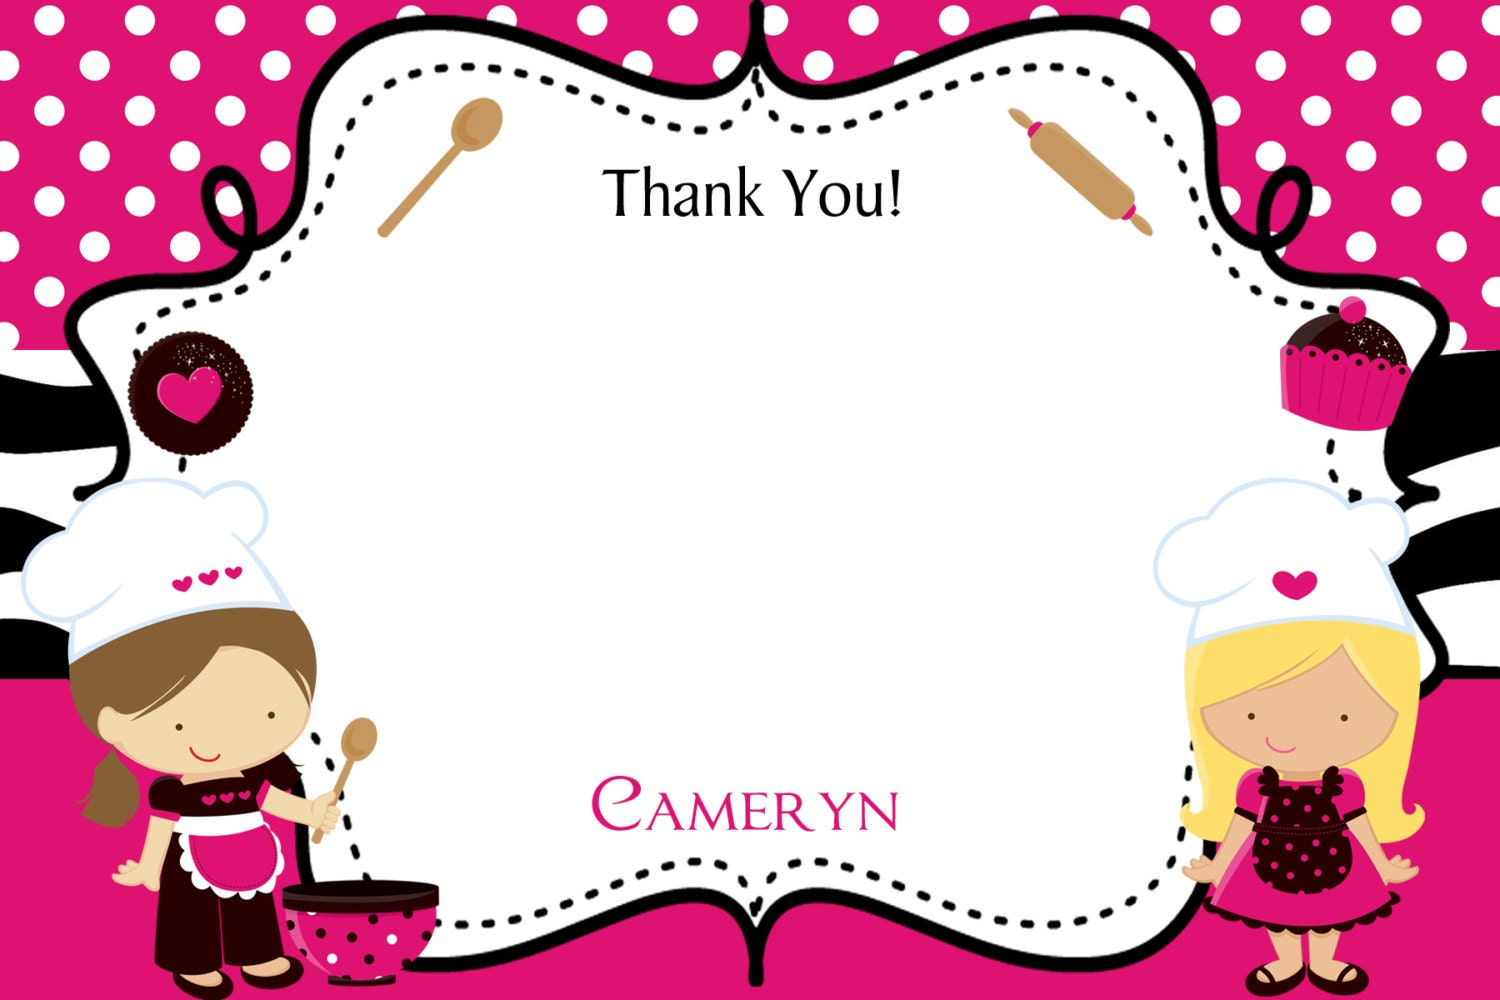 Thank You For Baking: Baking Party Thank You Note Cooking Birthday Party Thank You